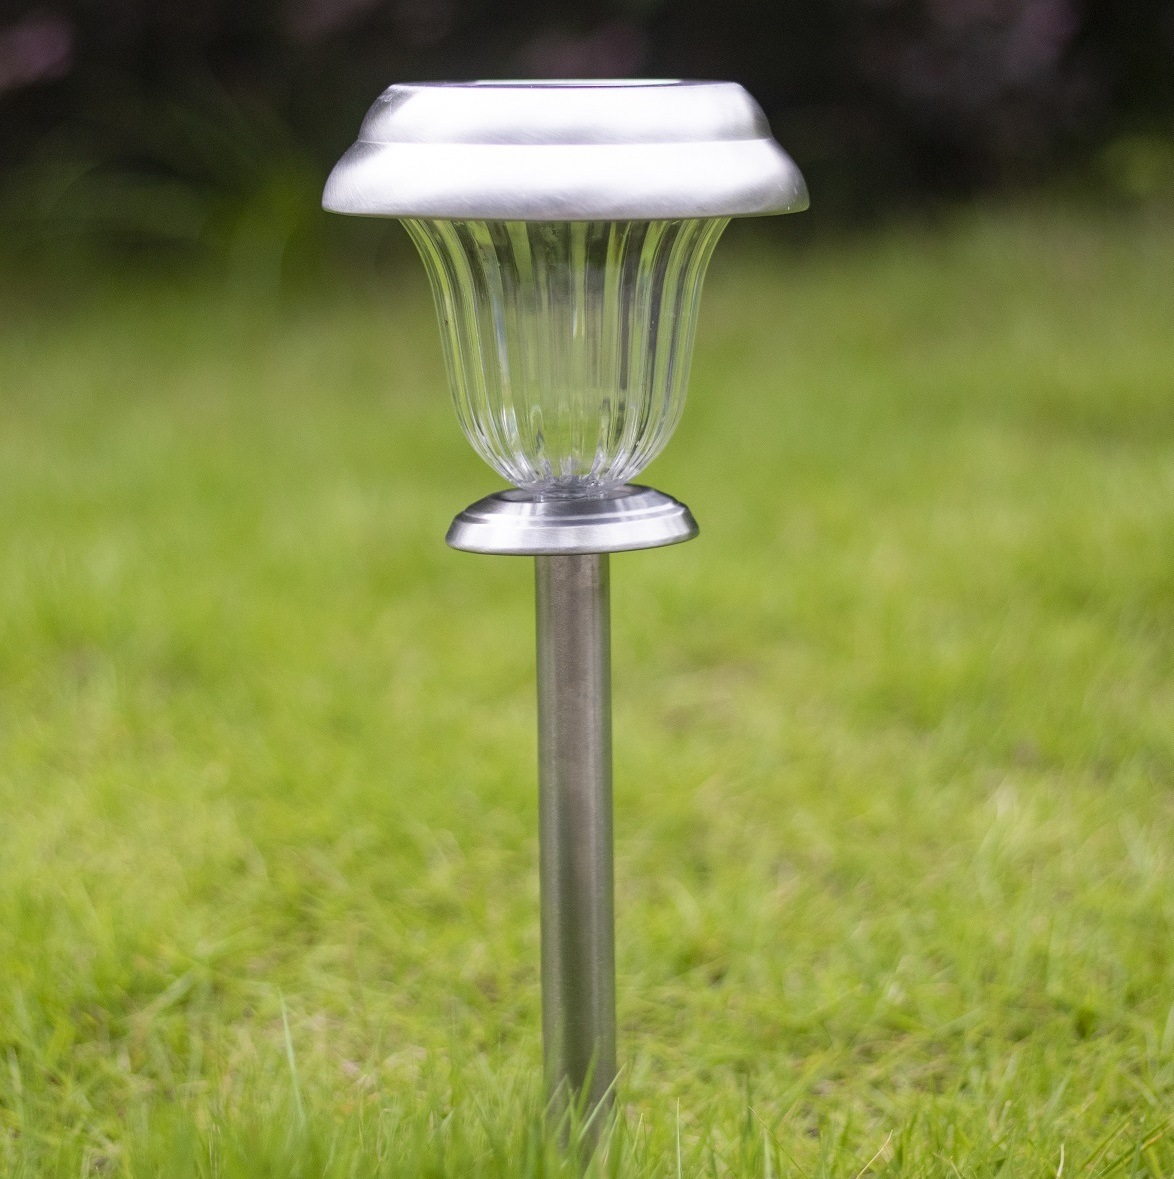 China Solar Lights Outdoor Decorative Garden Path Stake Lamp Led Yard Decorations Landscape Lighting Stainless Steel Driveway Stakes For Walkway Patio China Solar Lights Outdoor Solar Lights